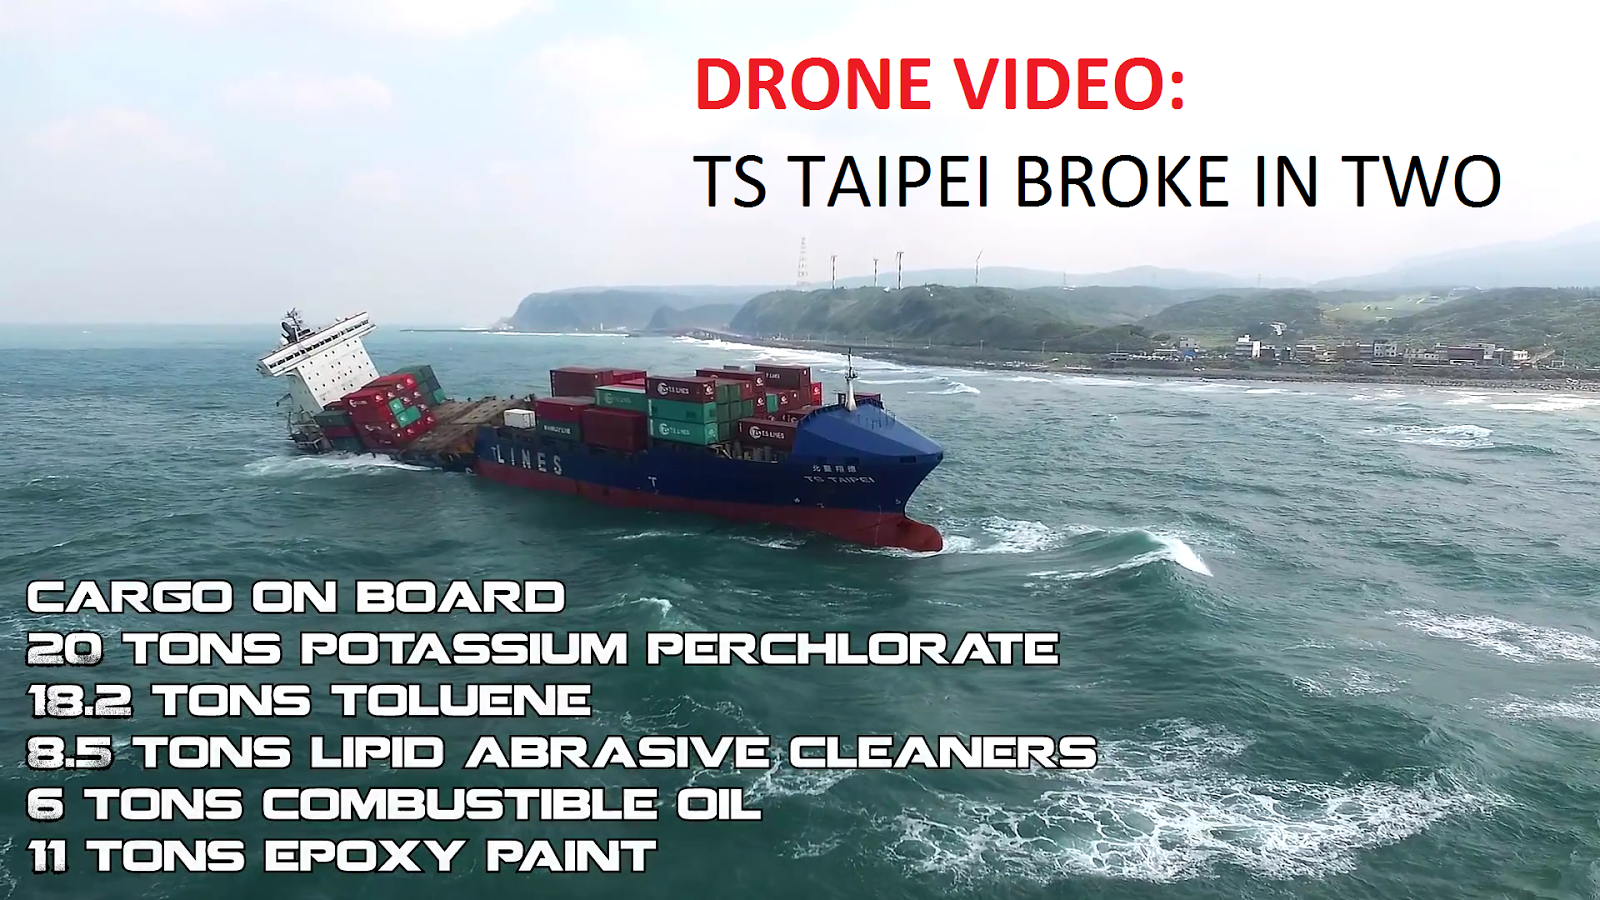 UPDATE: TS Taipei Grounding: Drone Video Shows Environmental Disaster Unfolding in Taiwan